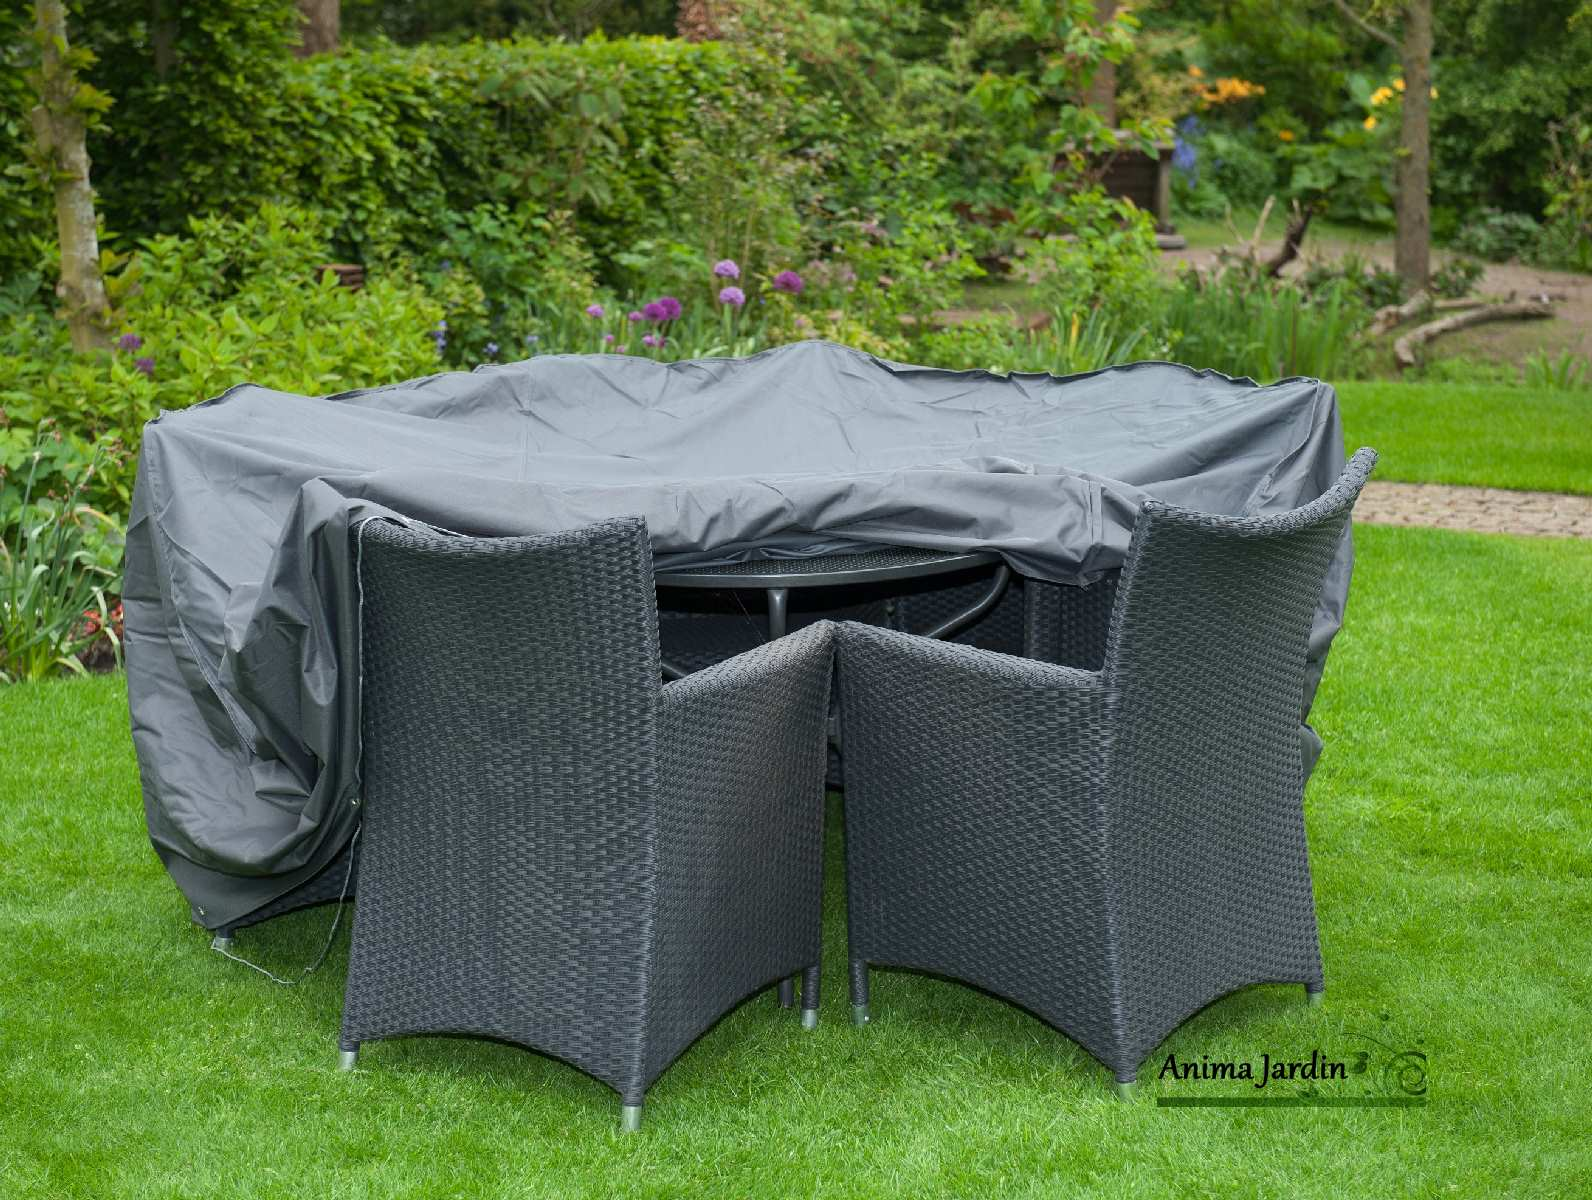 Housse de protection salon de jardin table ronde imperm able - Housse de salon de jardin ...